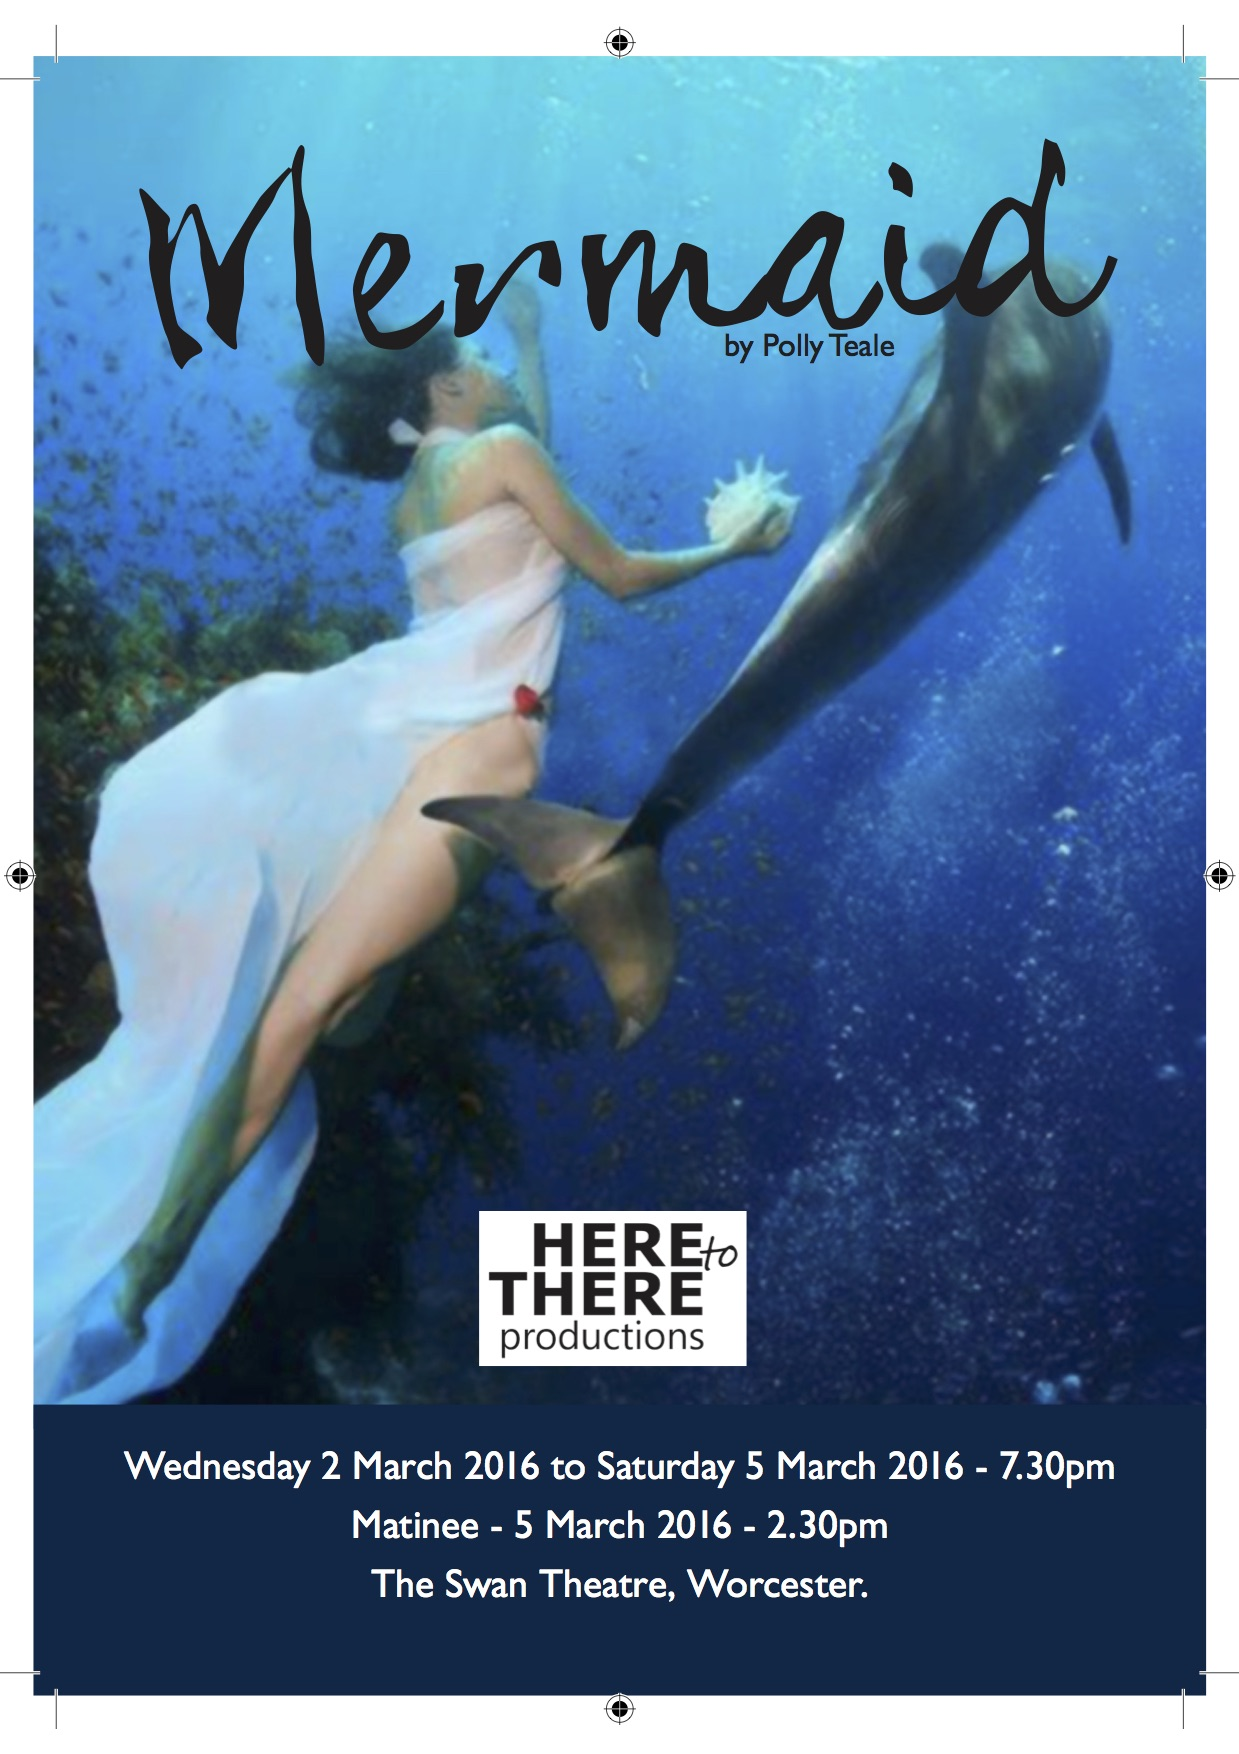 Mermaid flyer 1